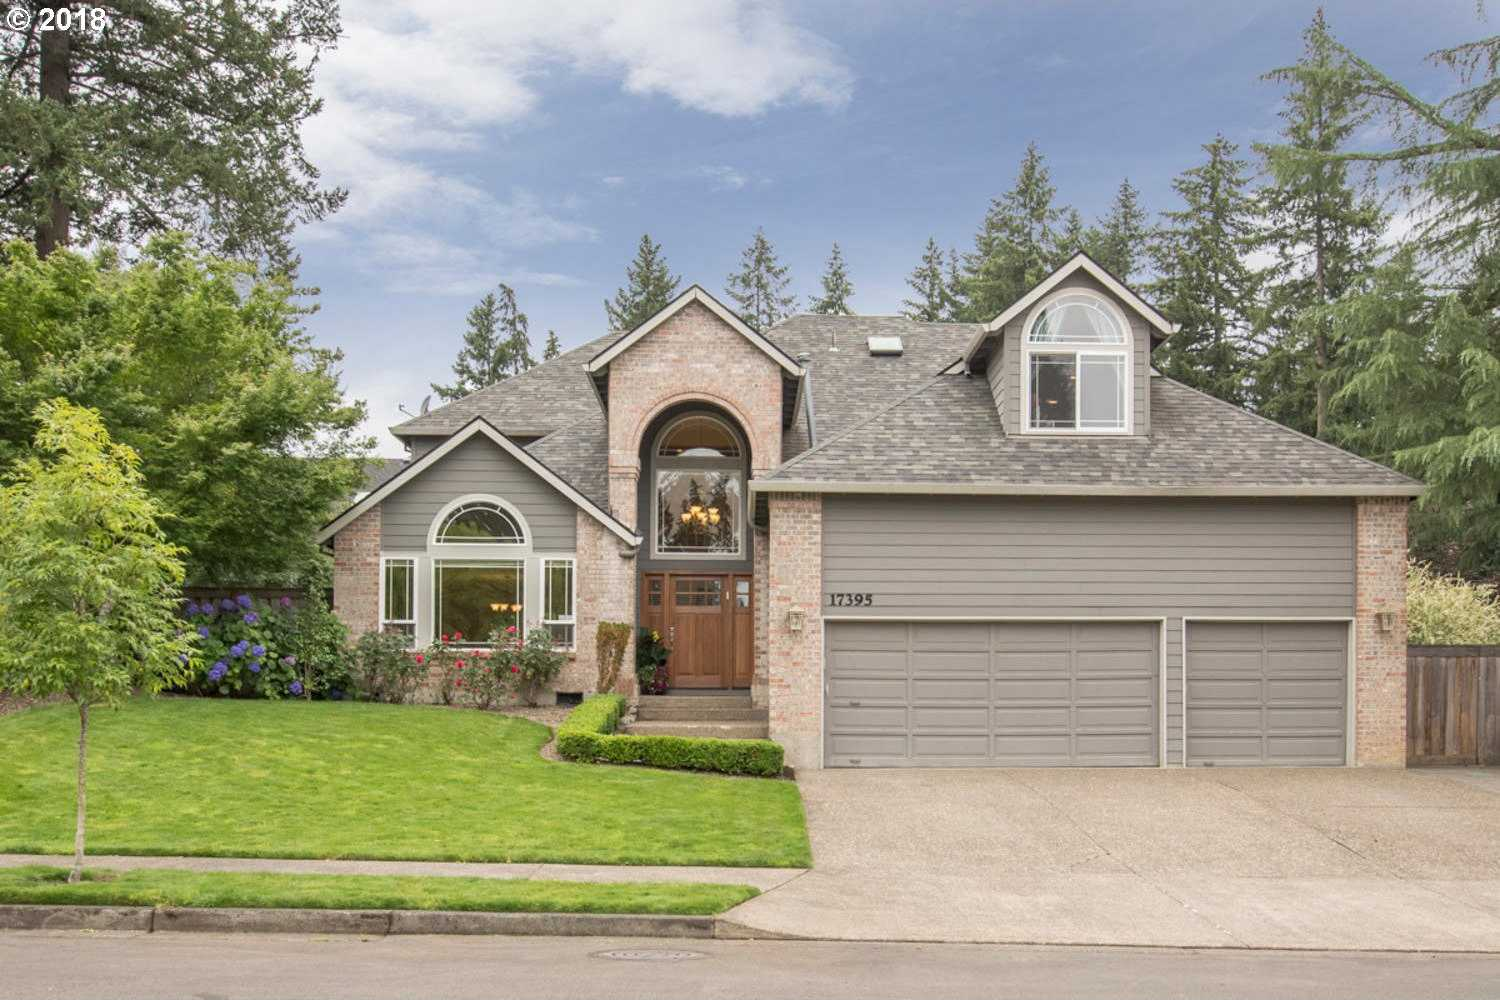 $699,900 - 4Br/3Ba -  for Sale in Tualatin